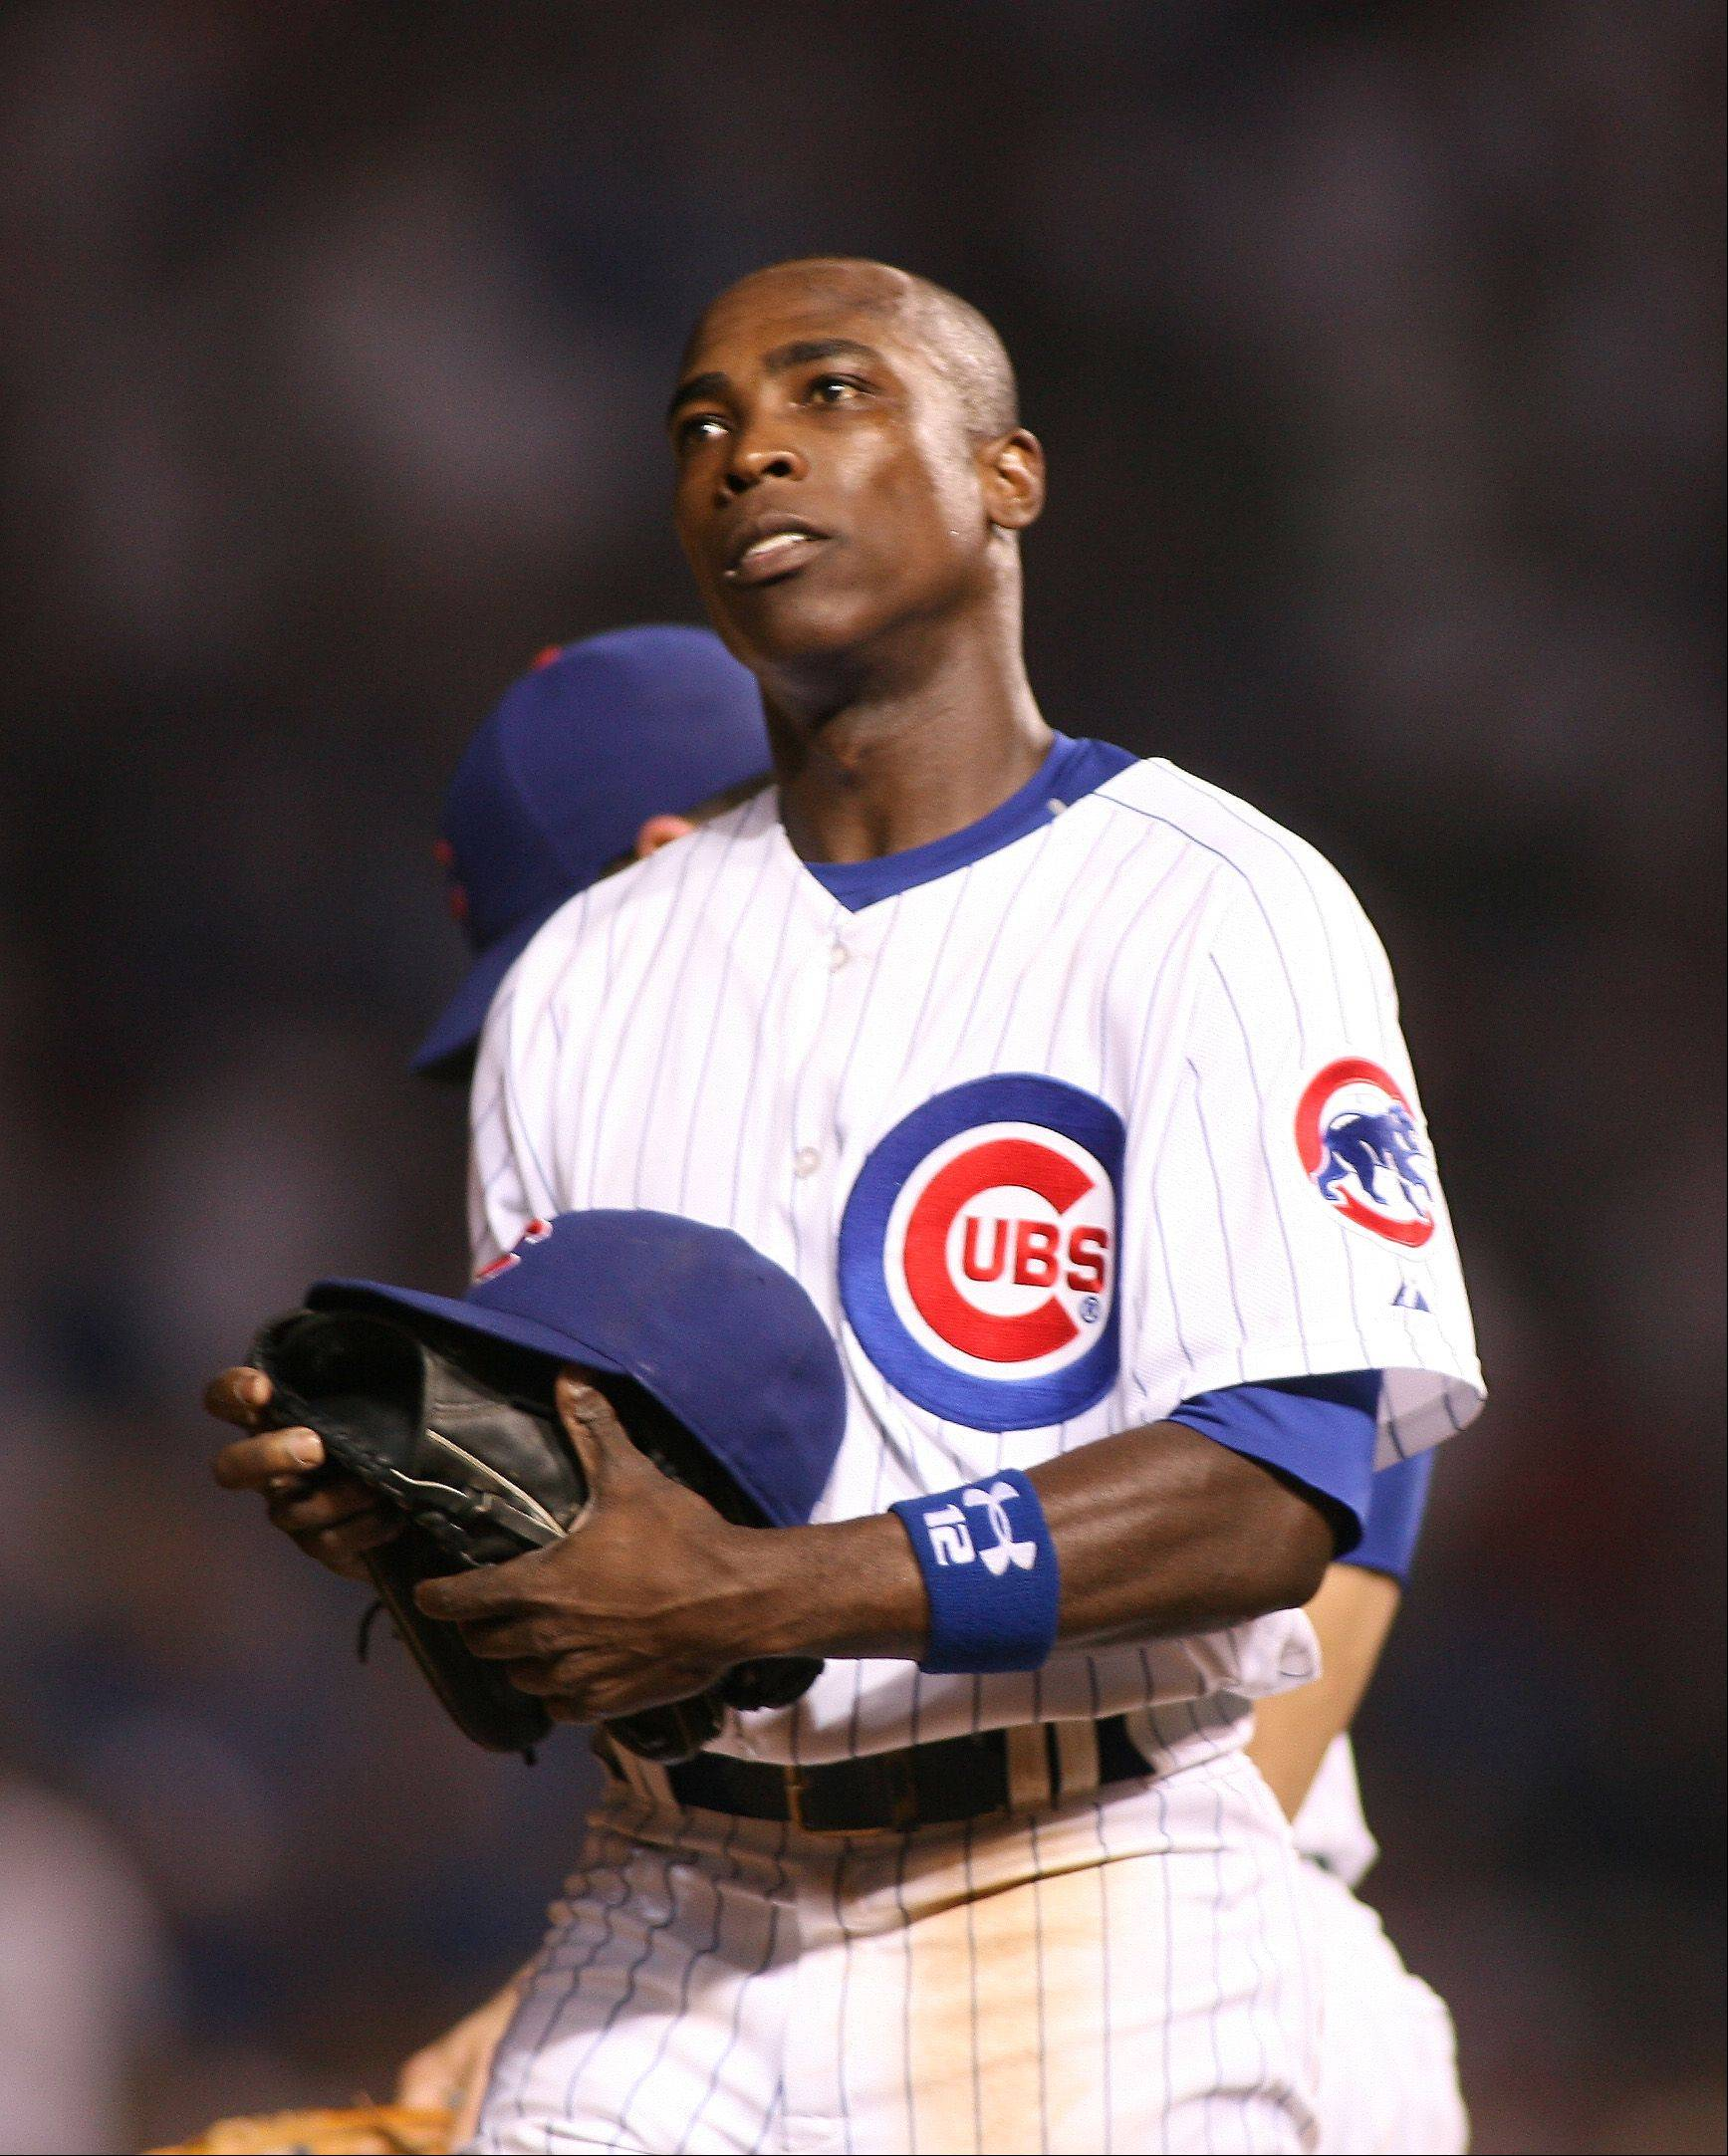 The Cubs have pulled Alfonso Soriano from the lineup, and manager Dale Sveum says a trade to the New York Yankees is �99 percent done.�